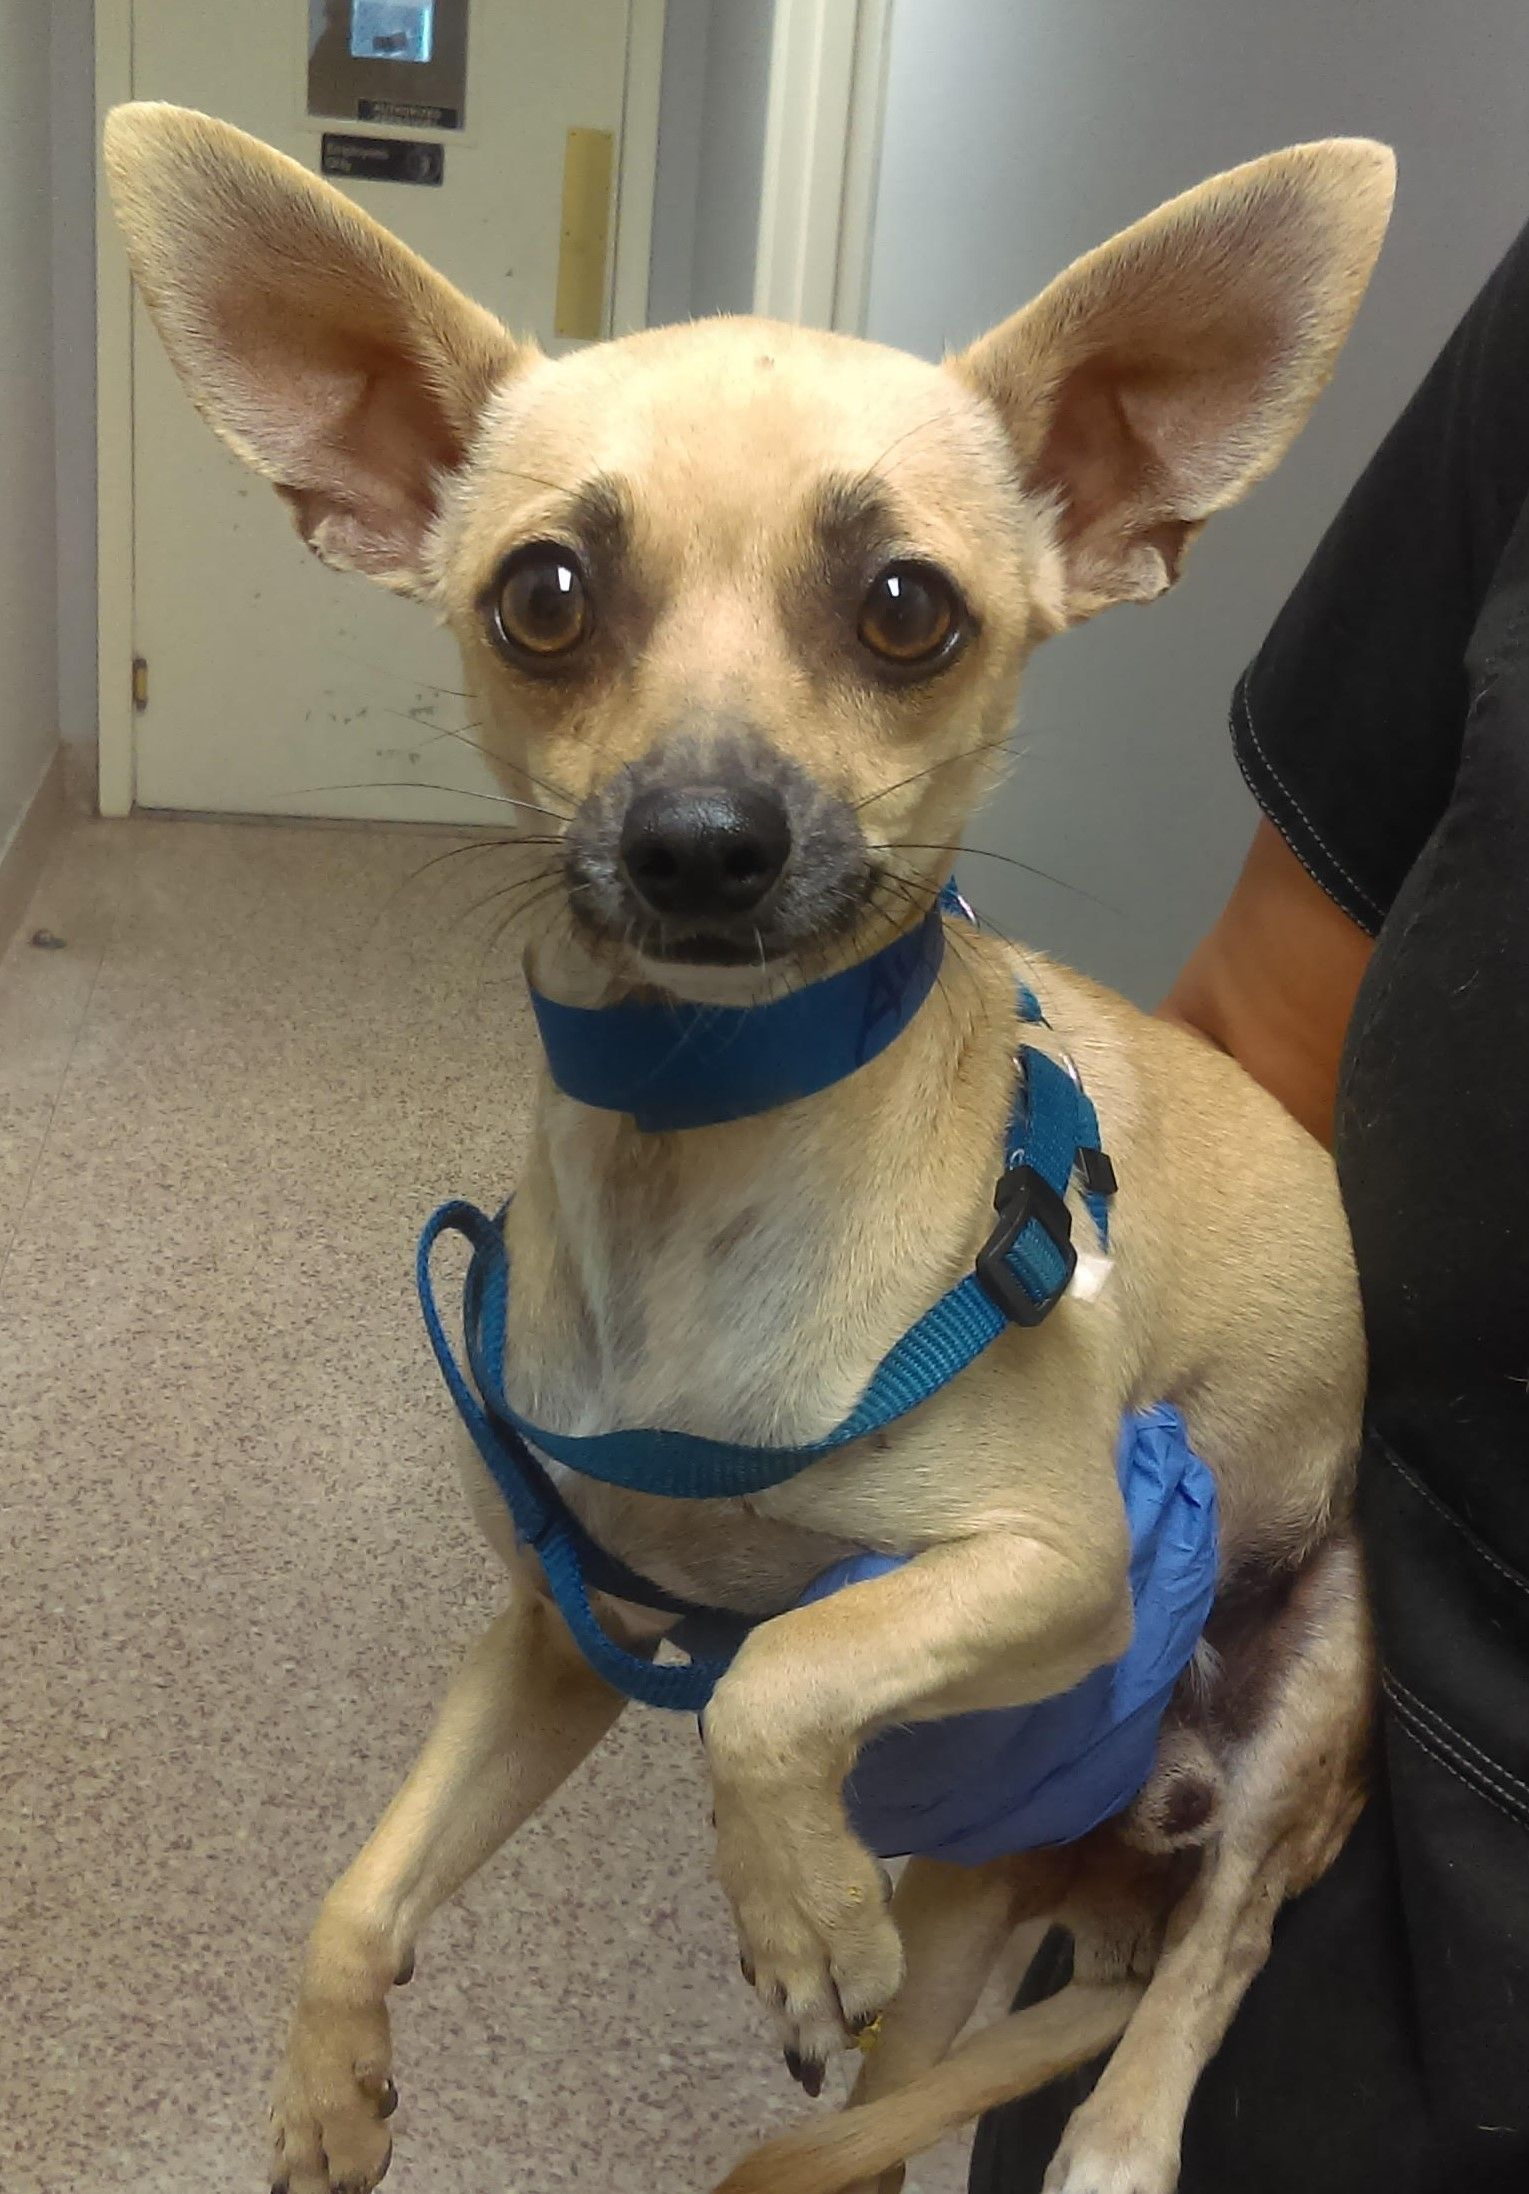 Chihuahua dog for Adoption in Seattle, WA. ADN699470 on